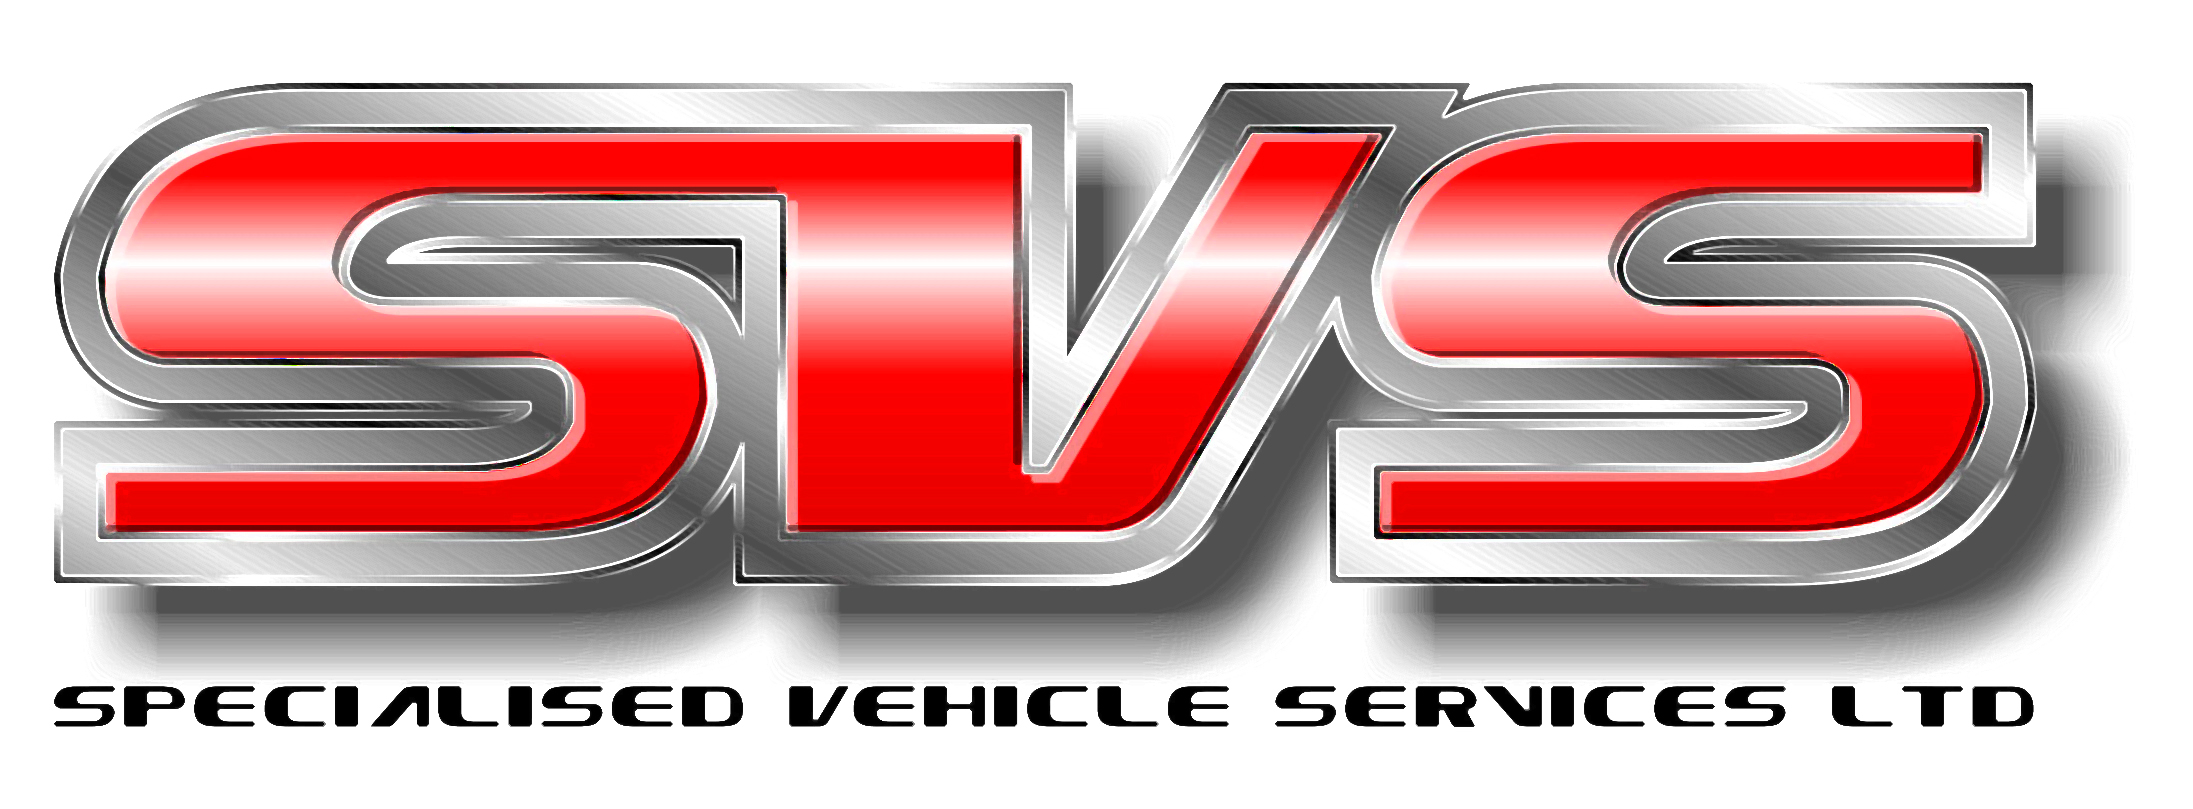 SPECIALISED VEHICLE SERVICES